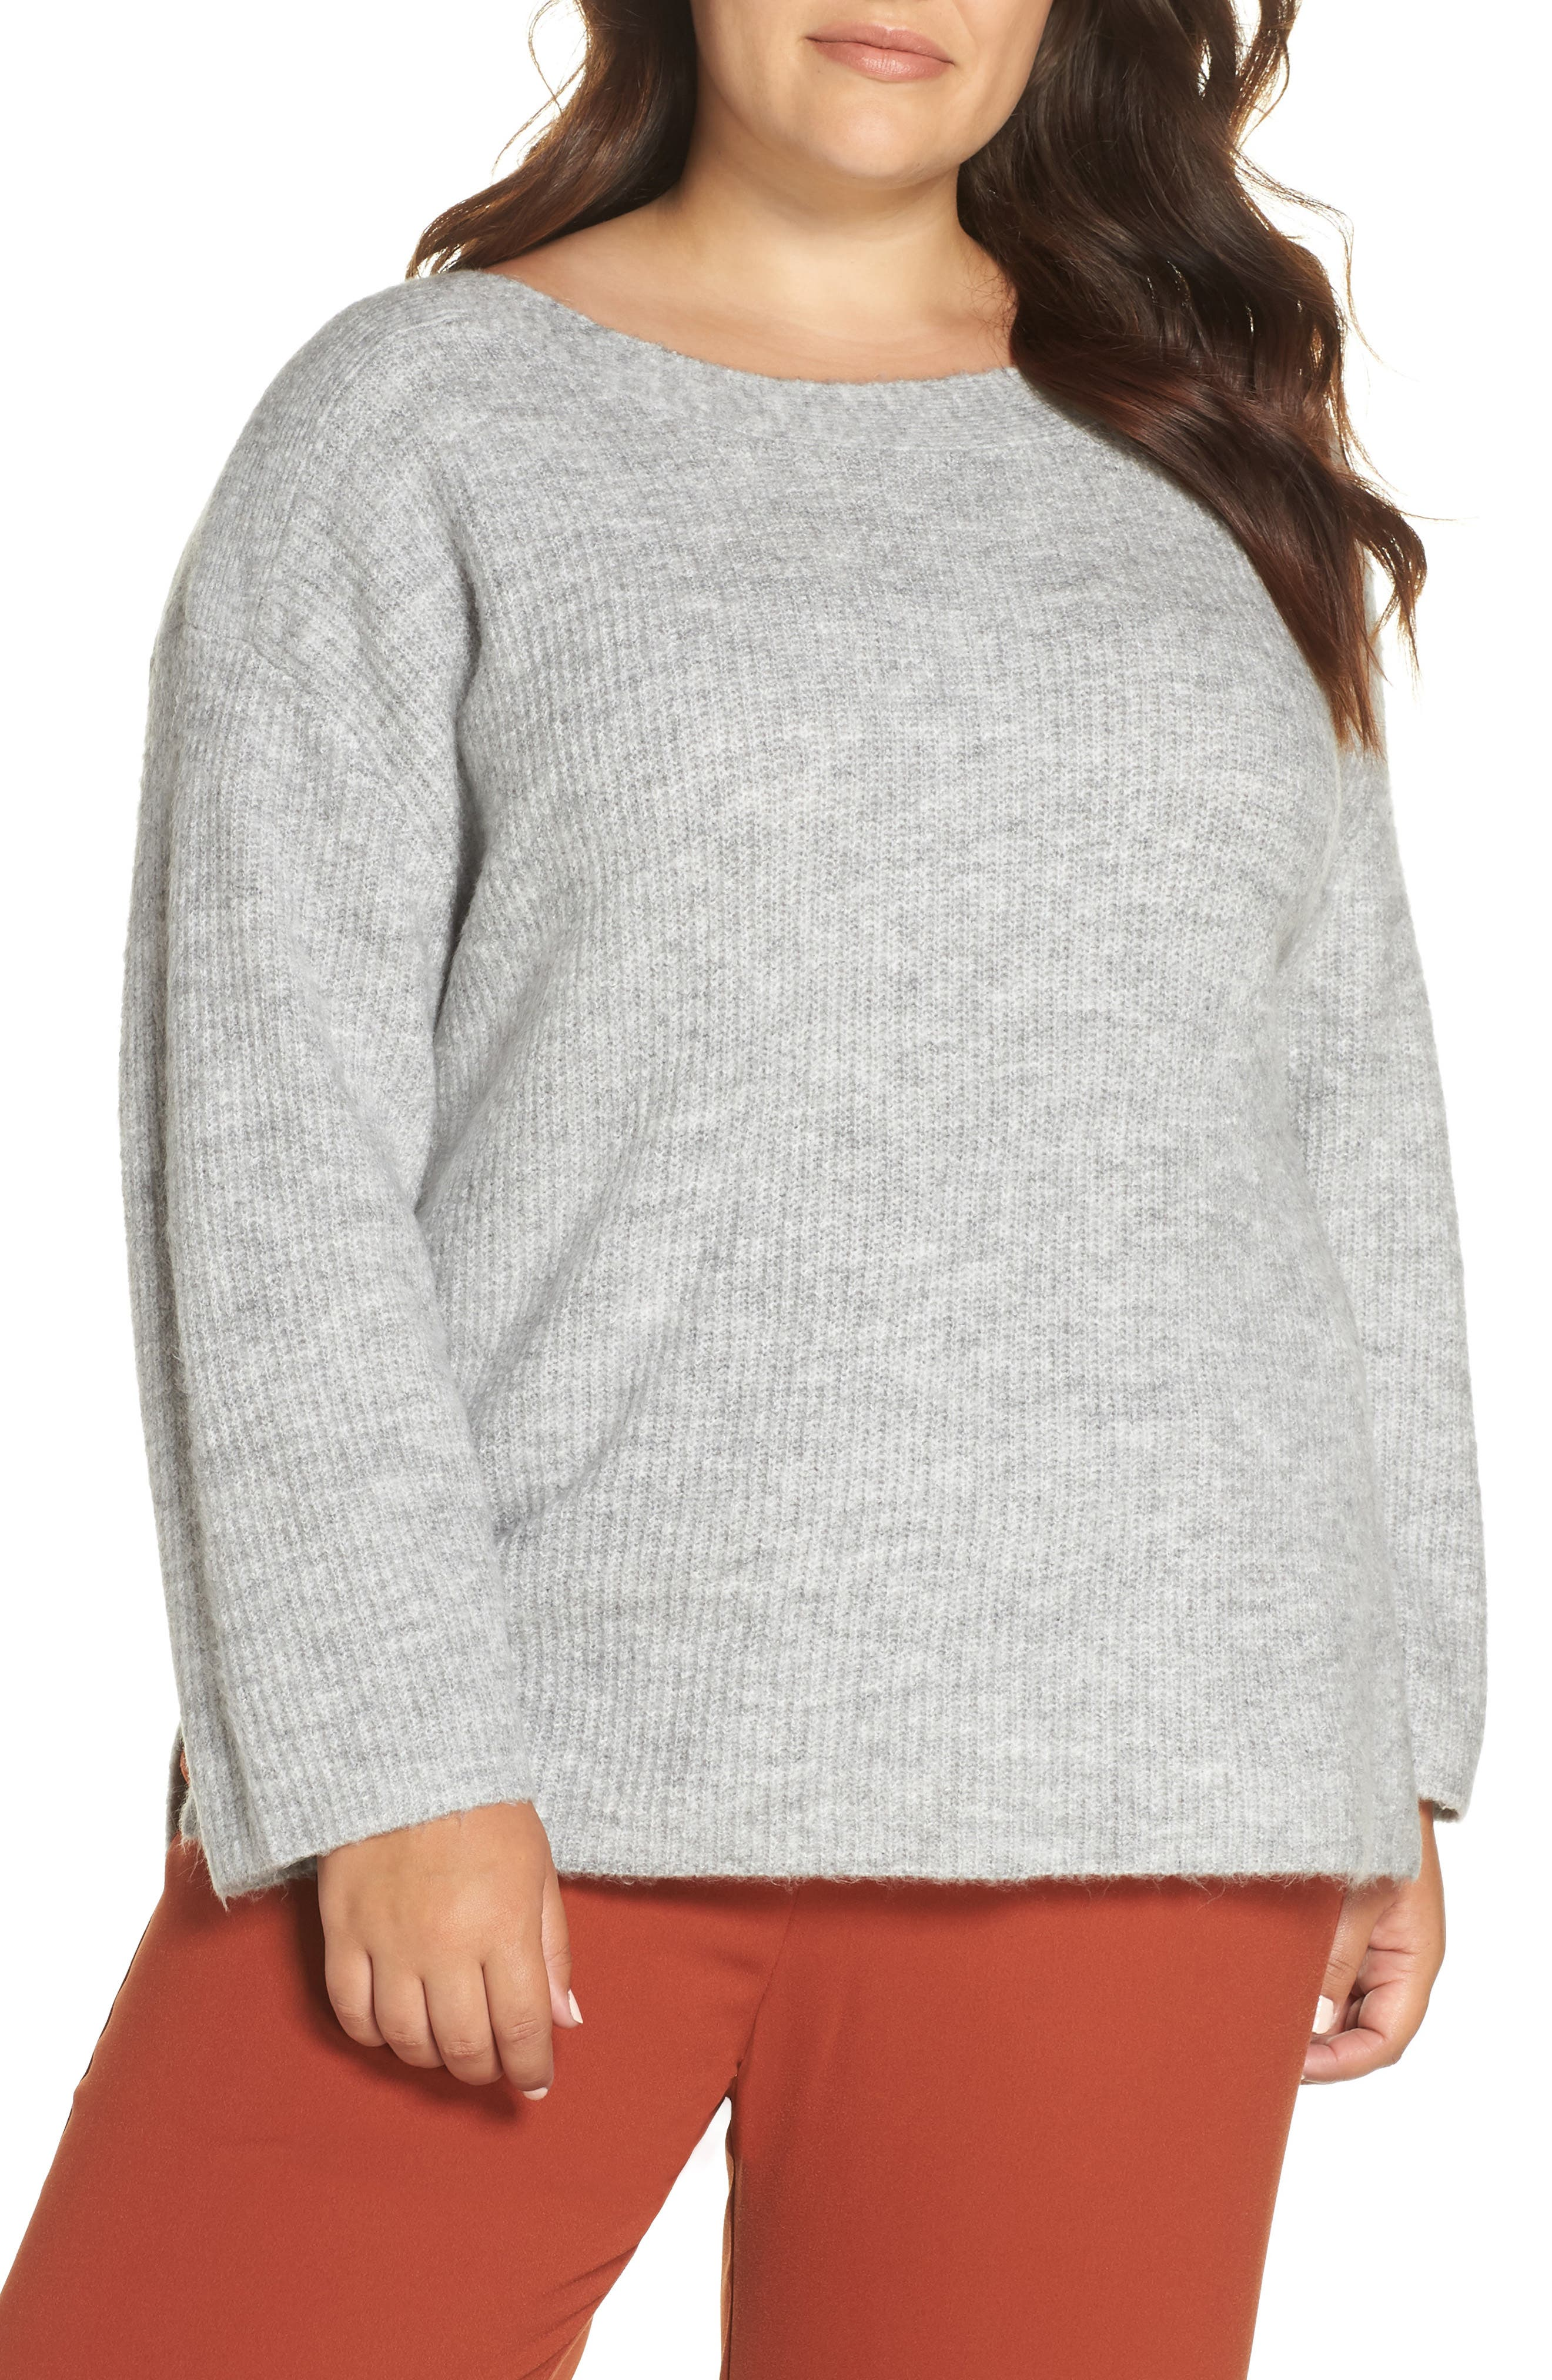 Cozy Femme Pullover Sweater,                             Main thumbnail 1, color,                             031